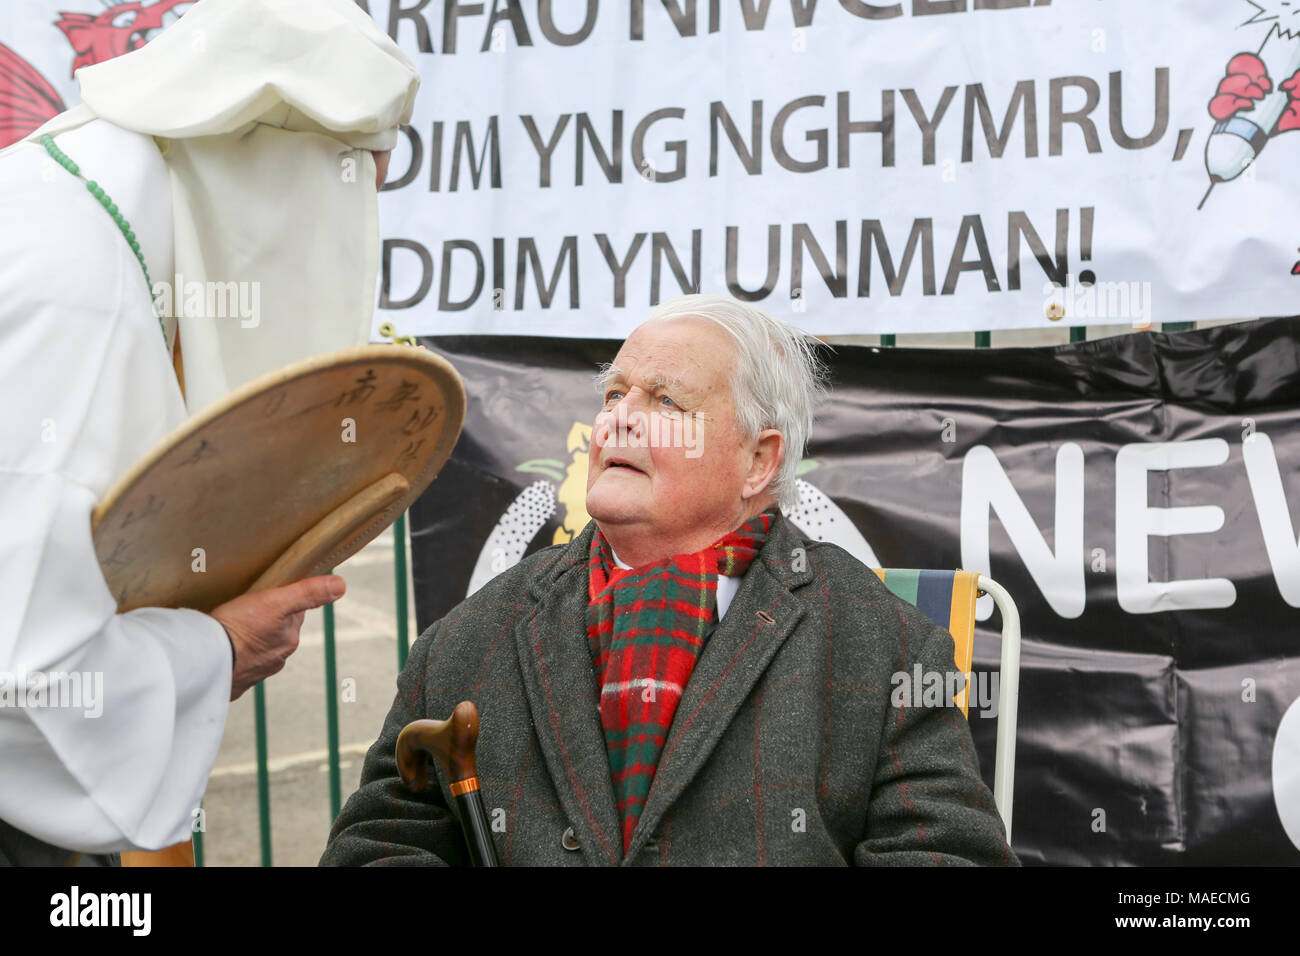 1st April, 2018. Bruce Kent at the rally. CND celebrate the 60th anniversary of the first Aldermaston march - an event that mobilised thousands against the Bomb and shaped radical protest for generations. Penelope Barritt/Alamy Live News - Stock Image